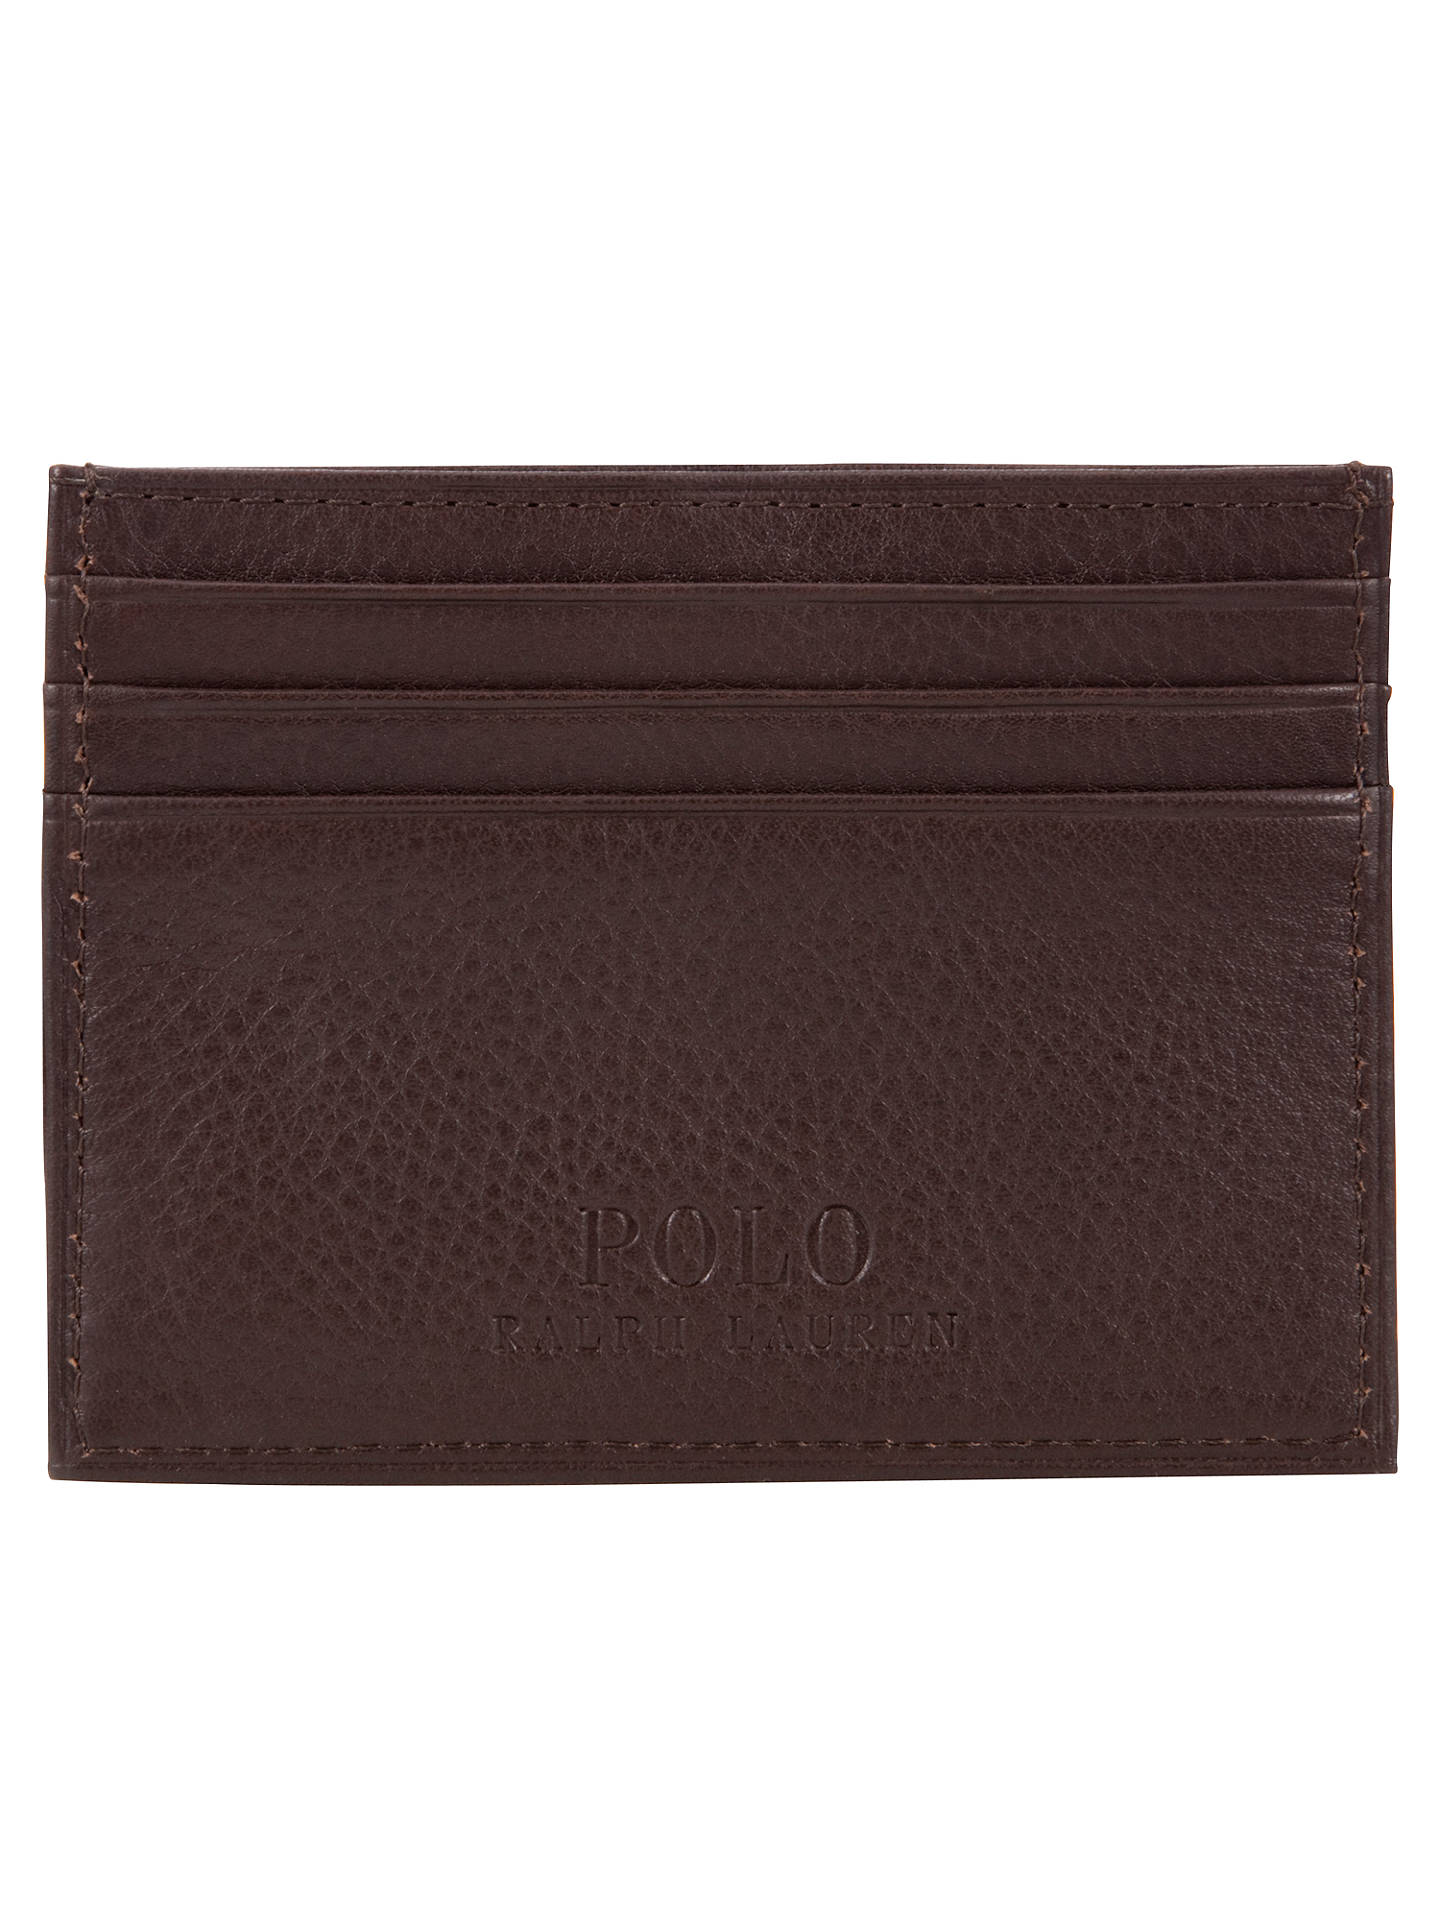 BuyPolo Ralph Lauren Pebble Leather Card Holder, Brown Online at johnlewis.com